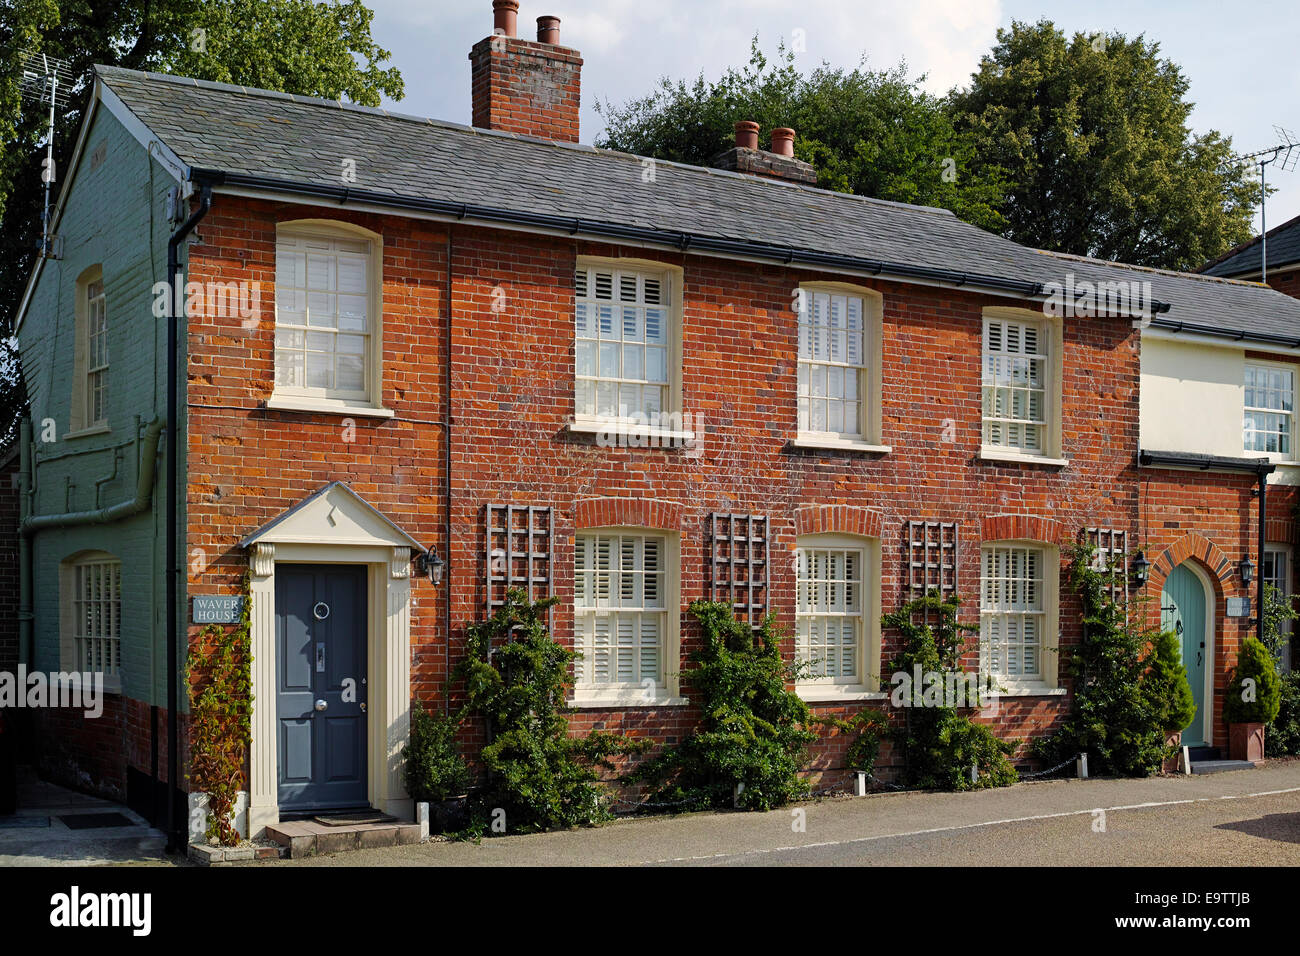 Terraced red brick houses in Cavendish Suffolk England - Stock Image